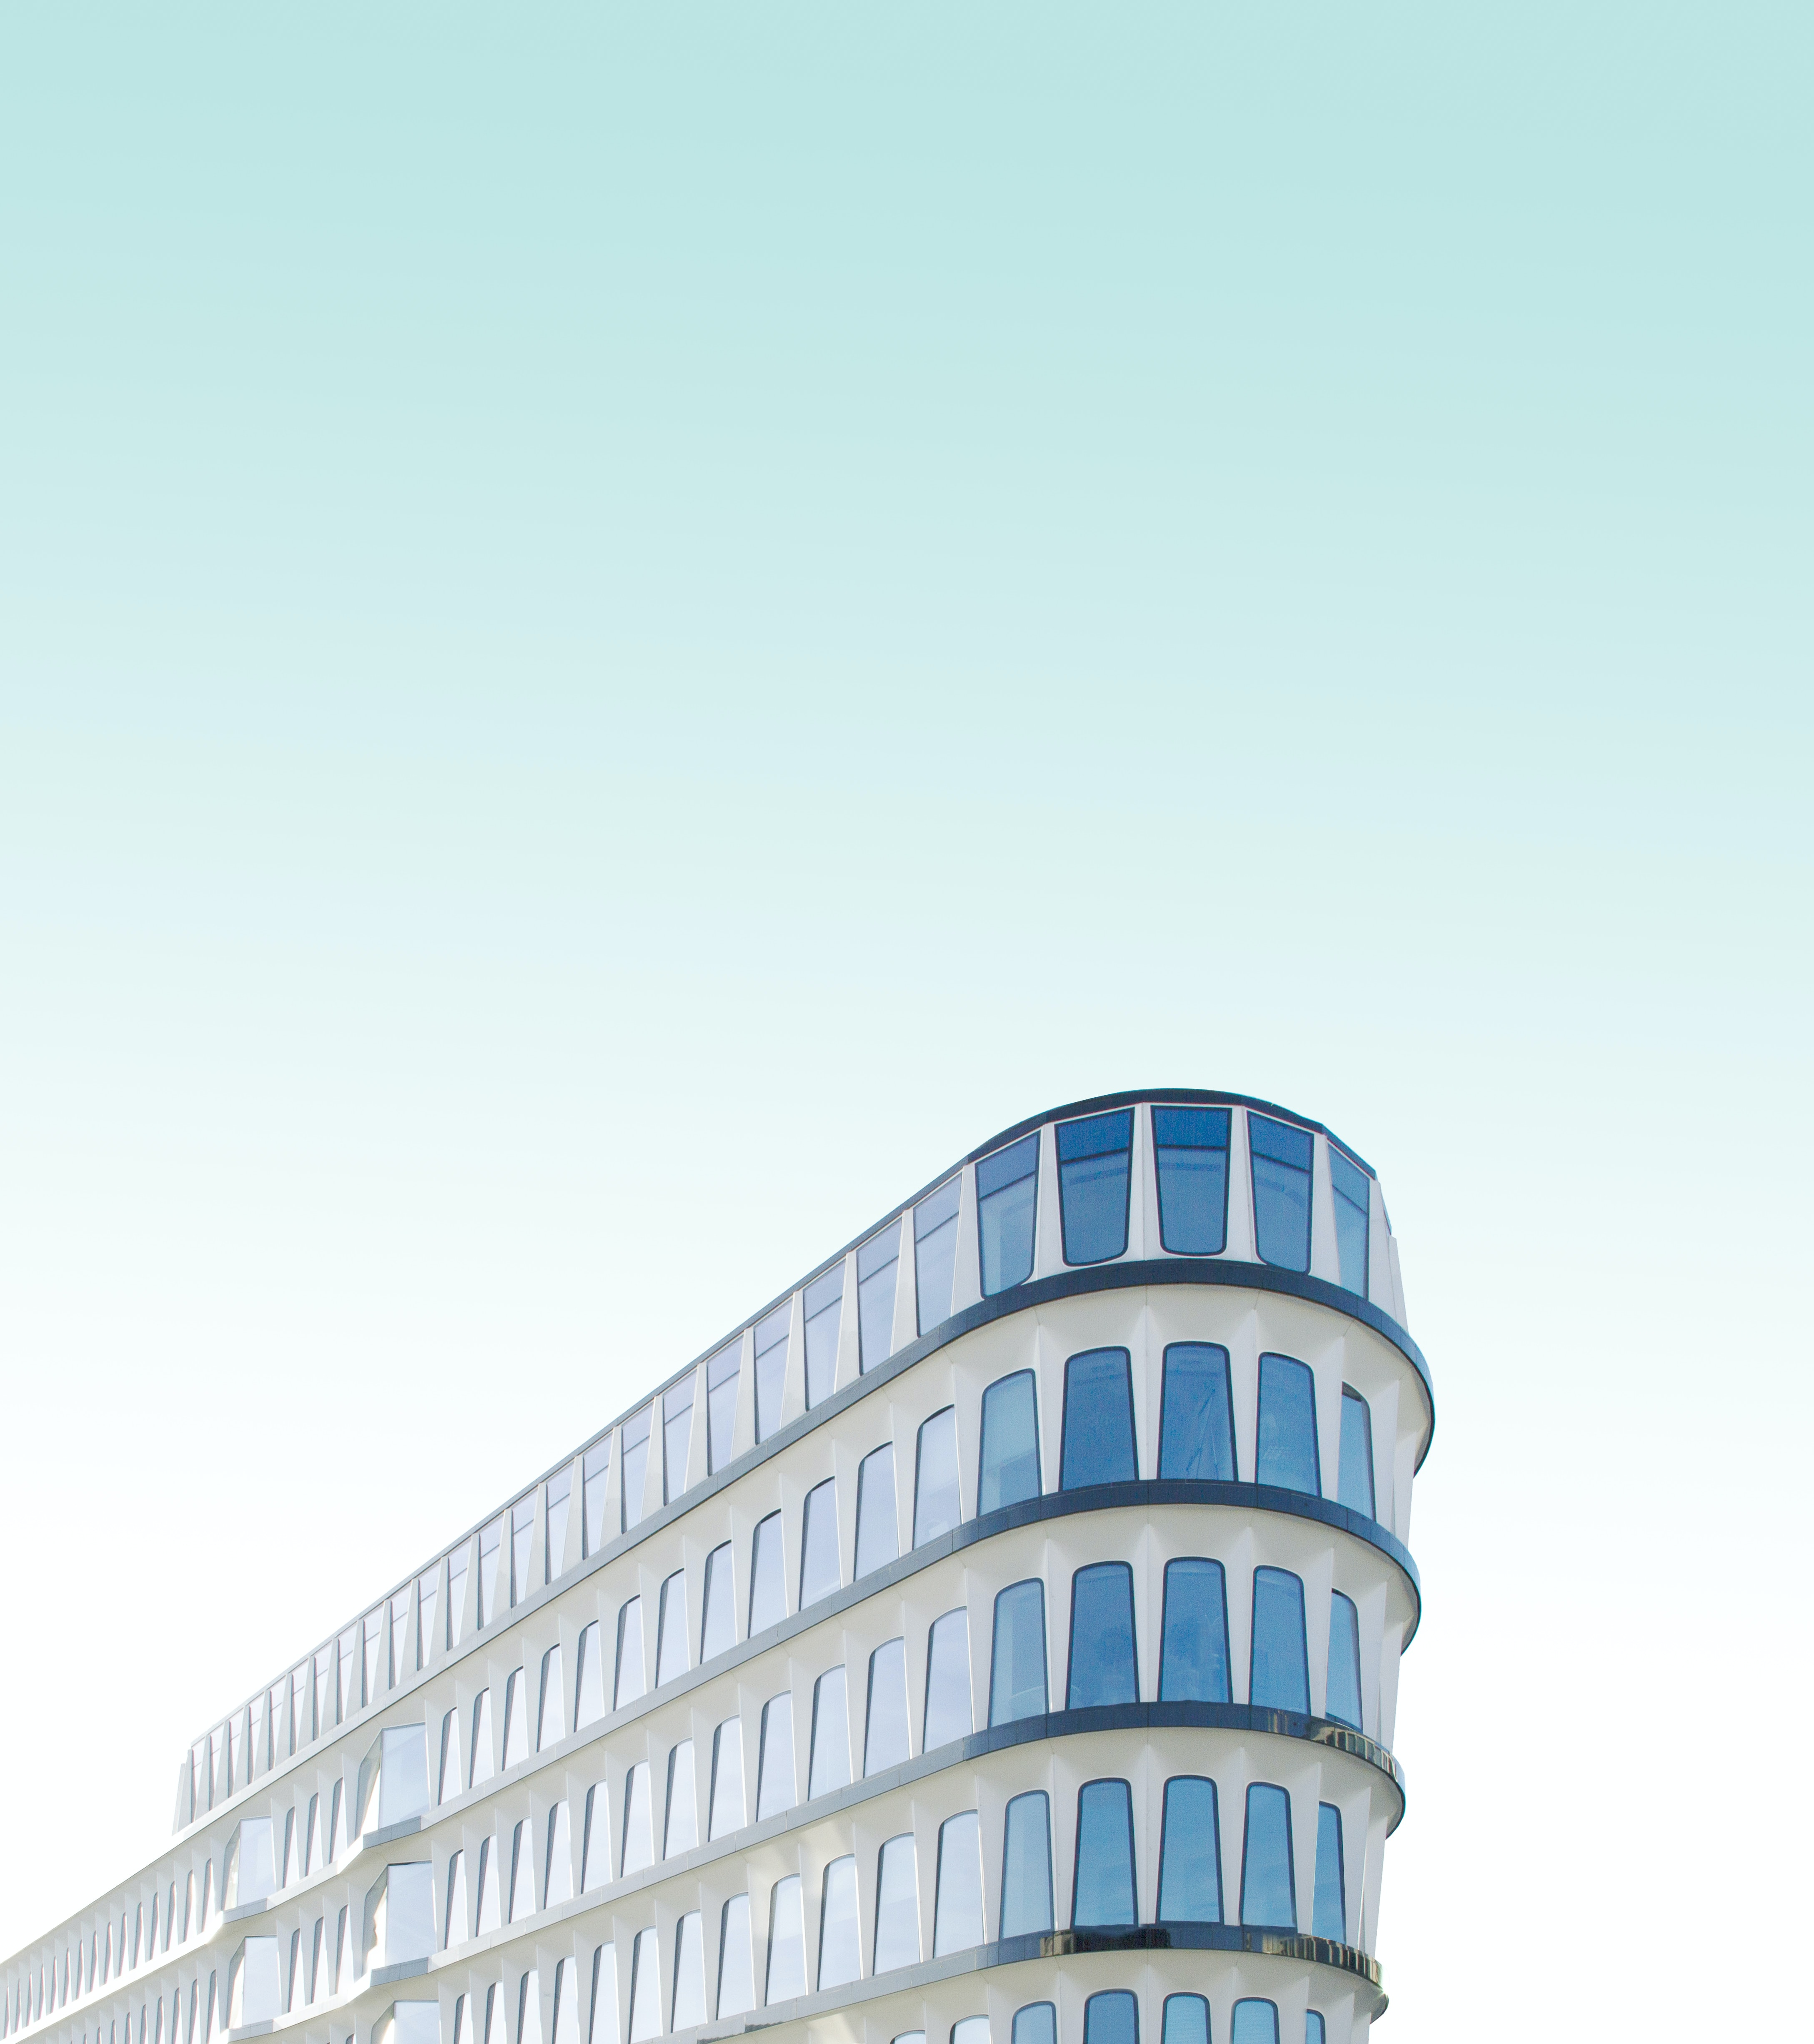 white and blue concrete building during daytime